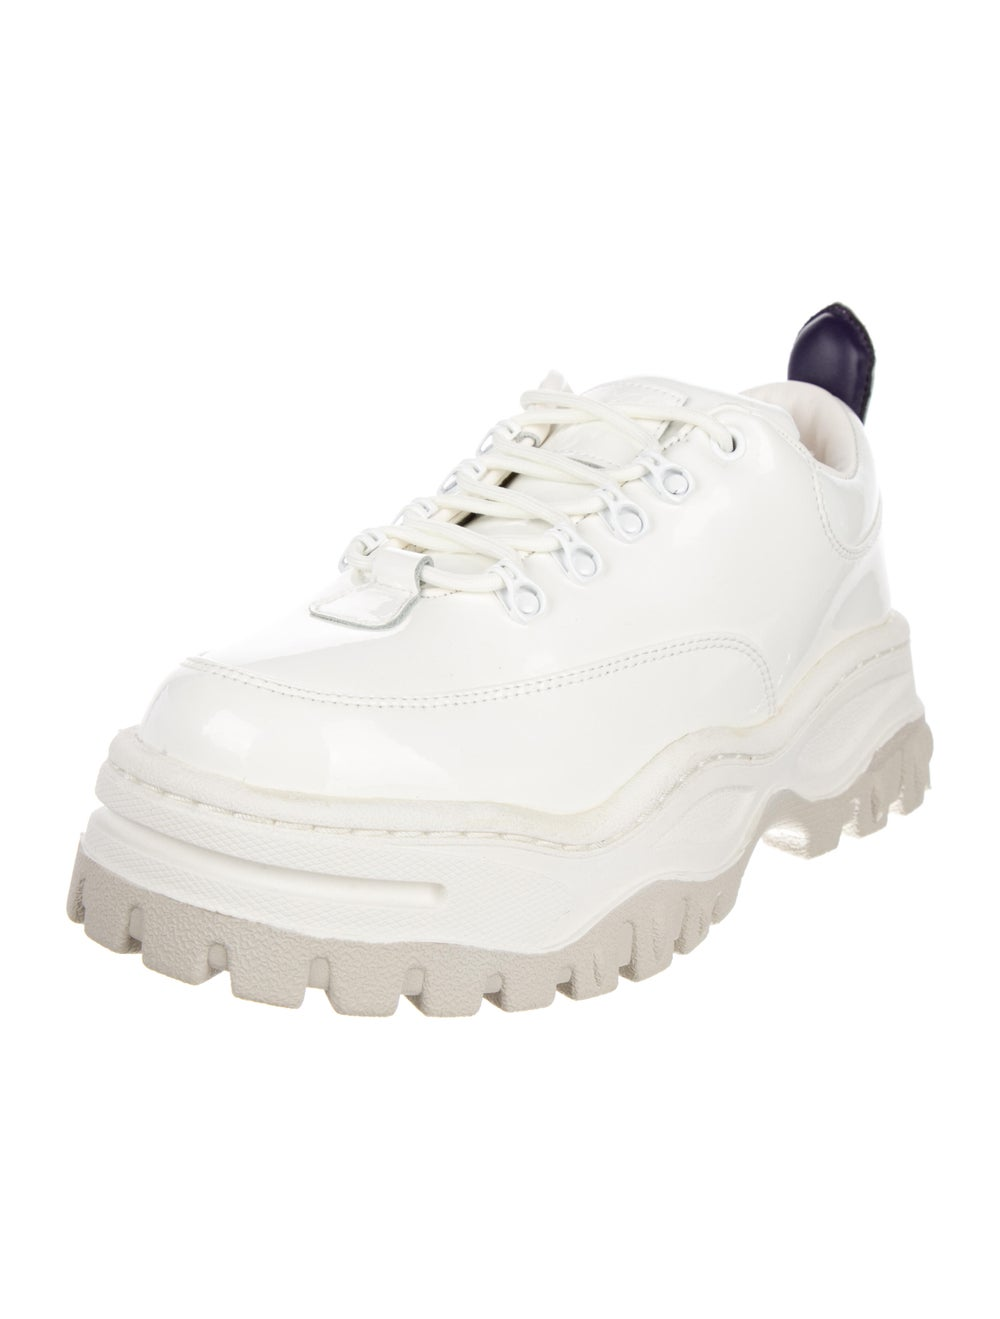 Eytys Sneakers White - image 2